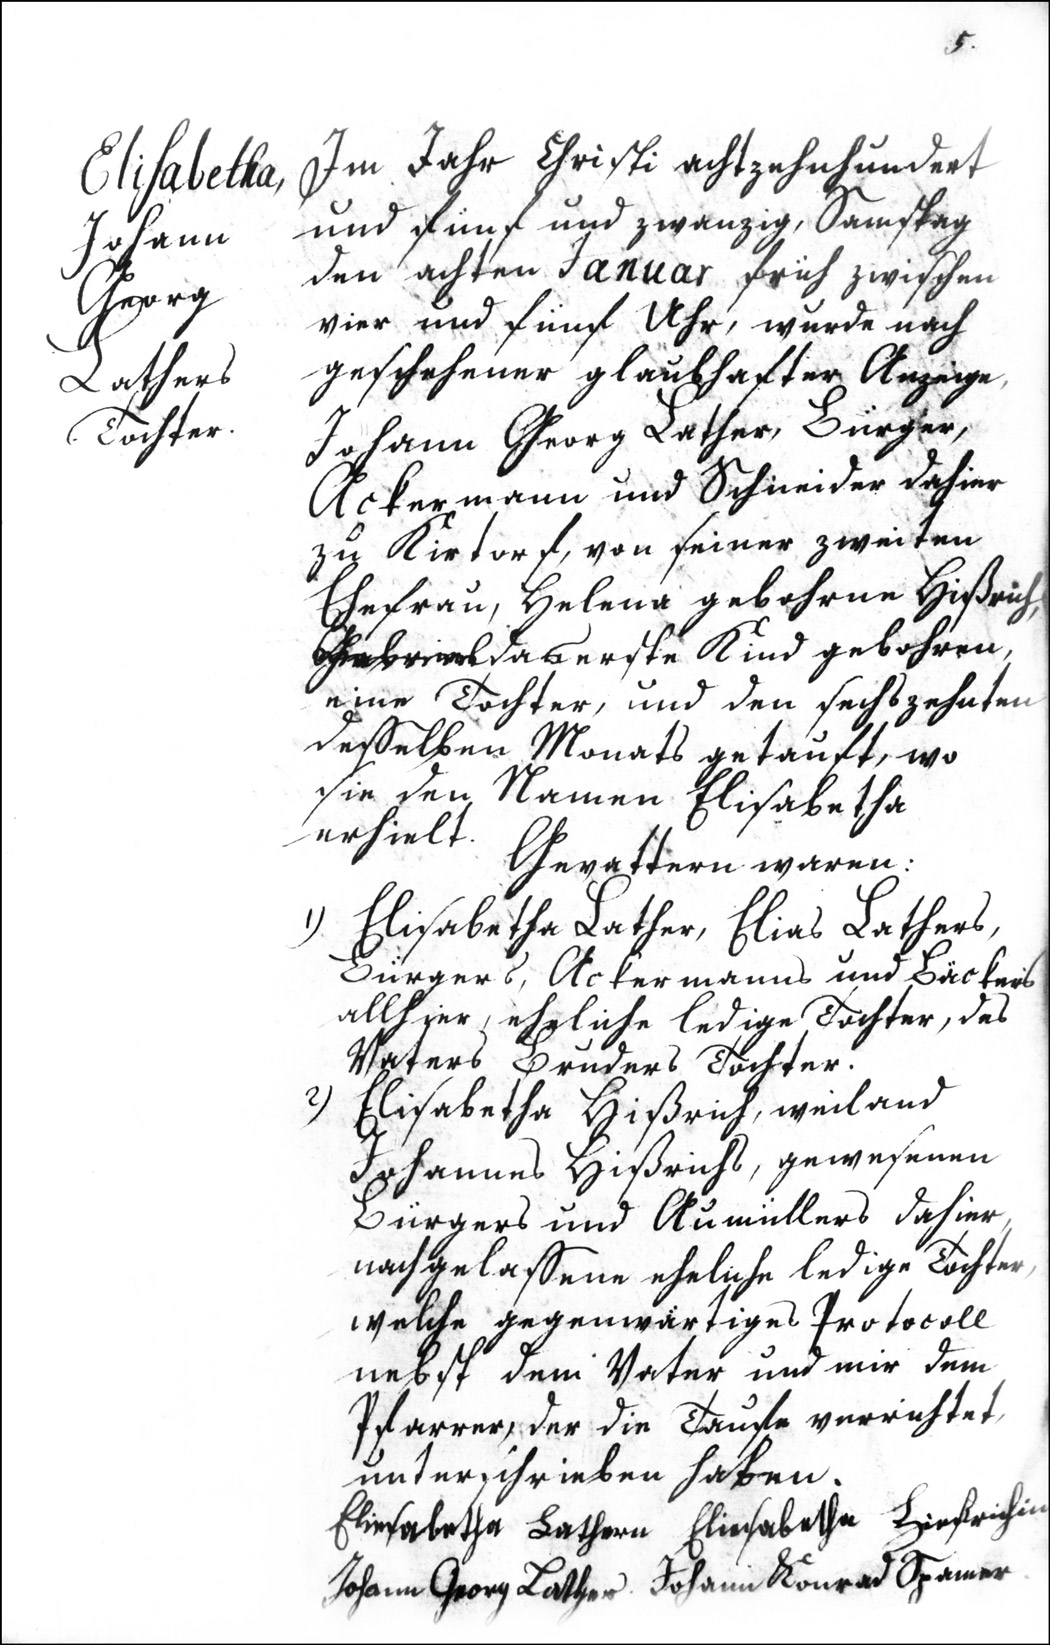 The Birth and Baptismal Record of Elisabetha Lather - 1825